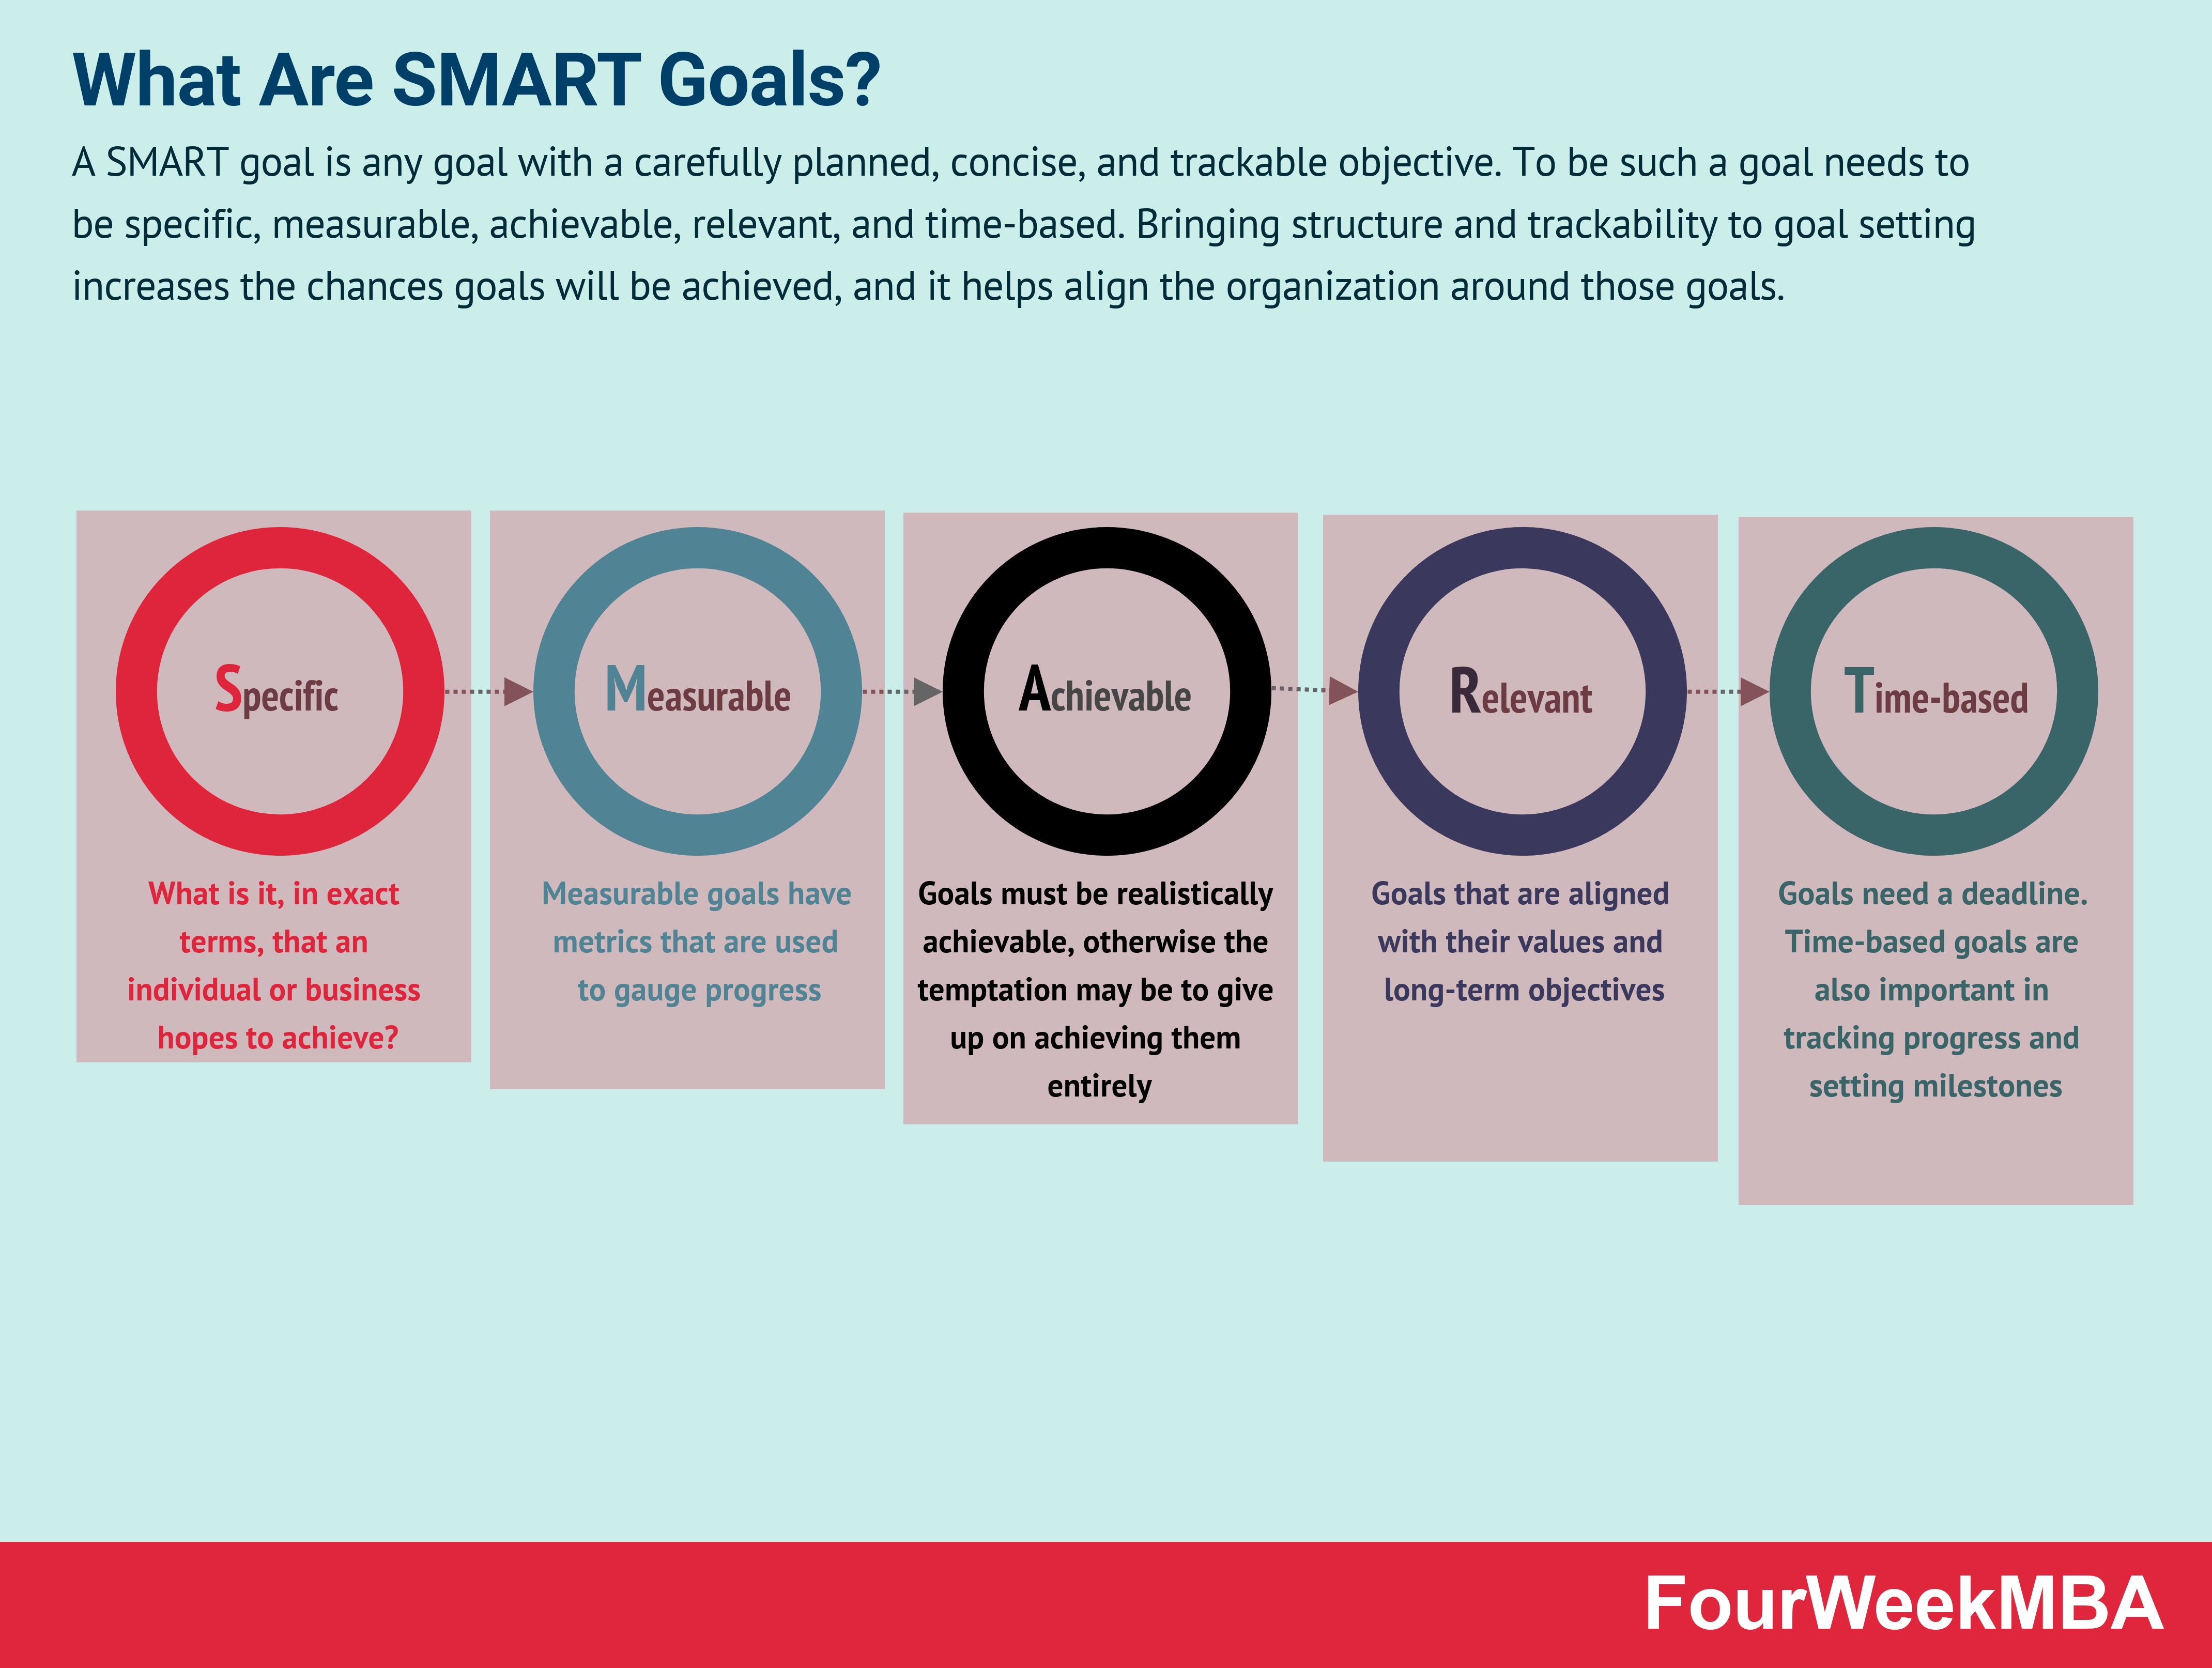 Why Is It Important That Goals Be Measurable